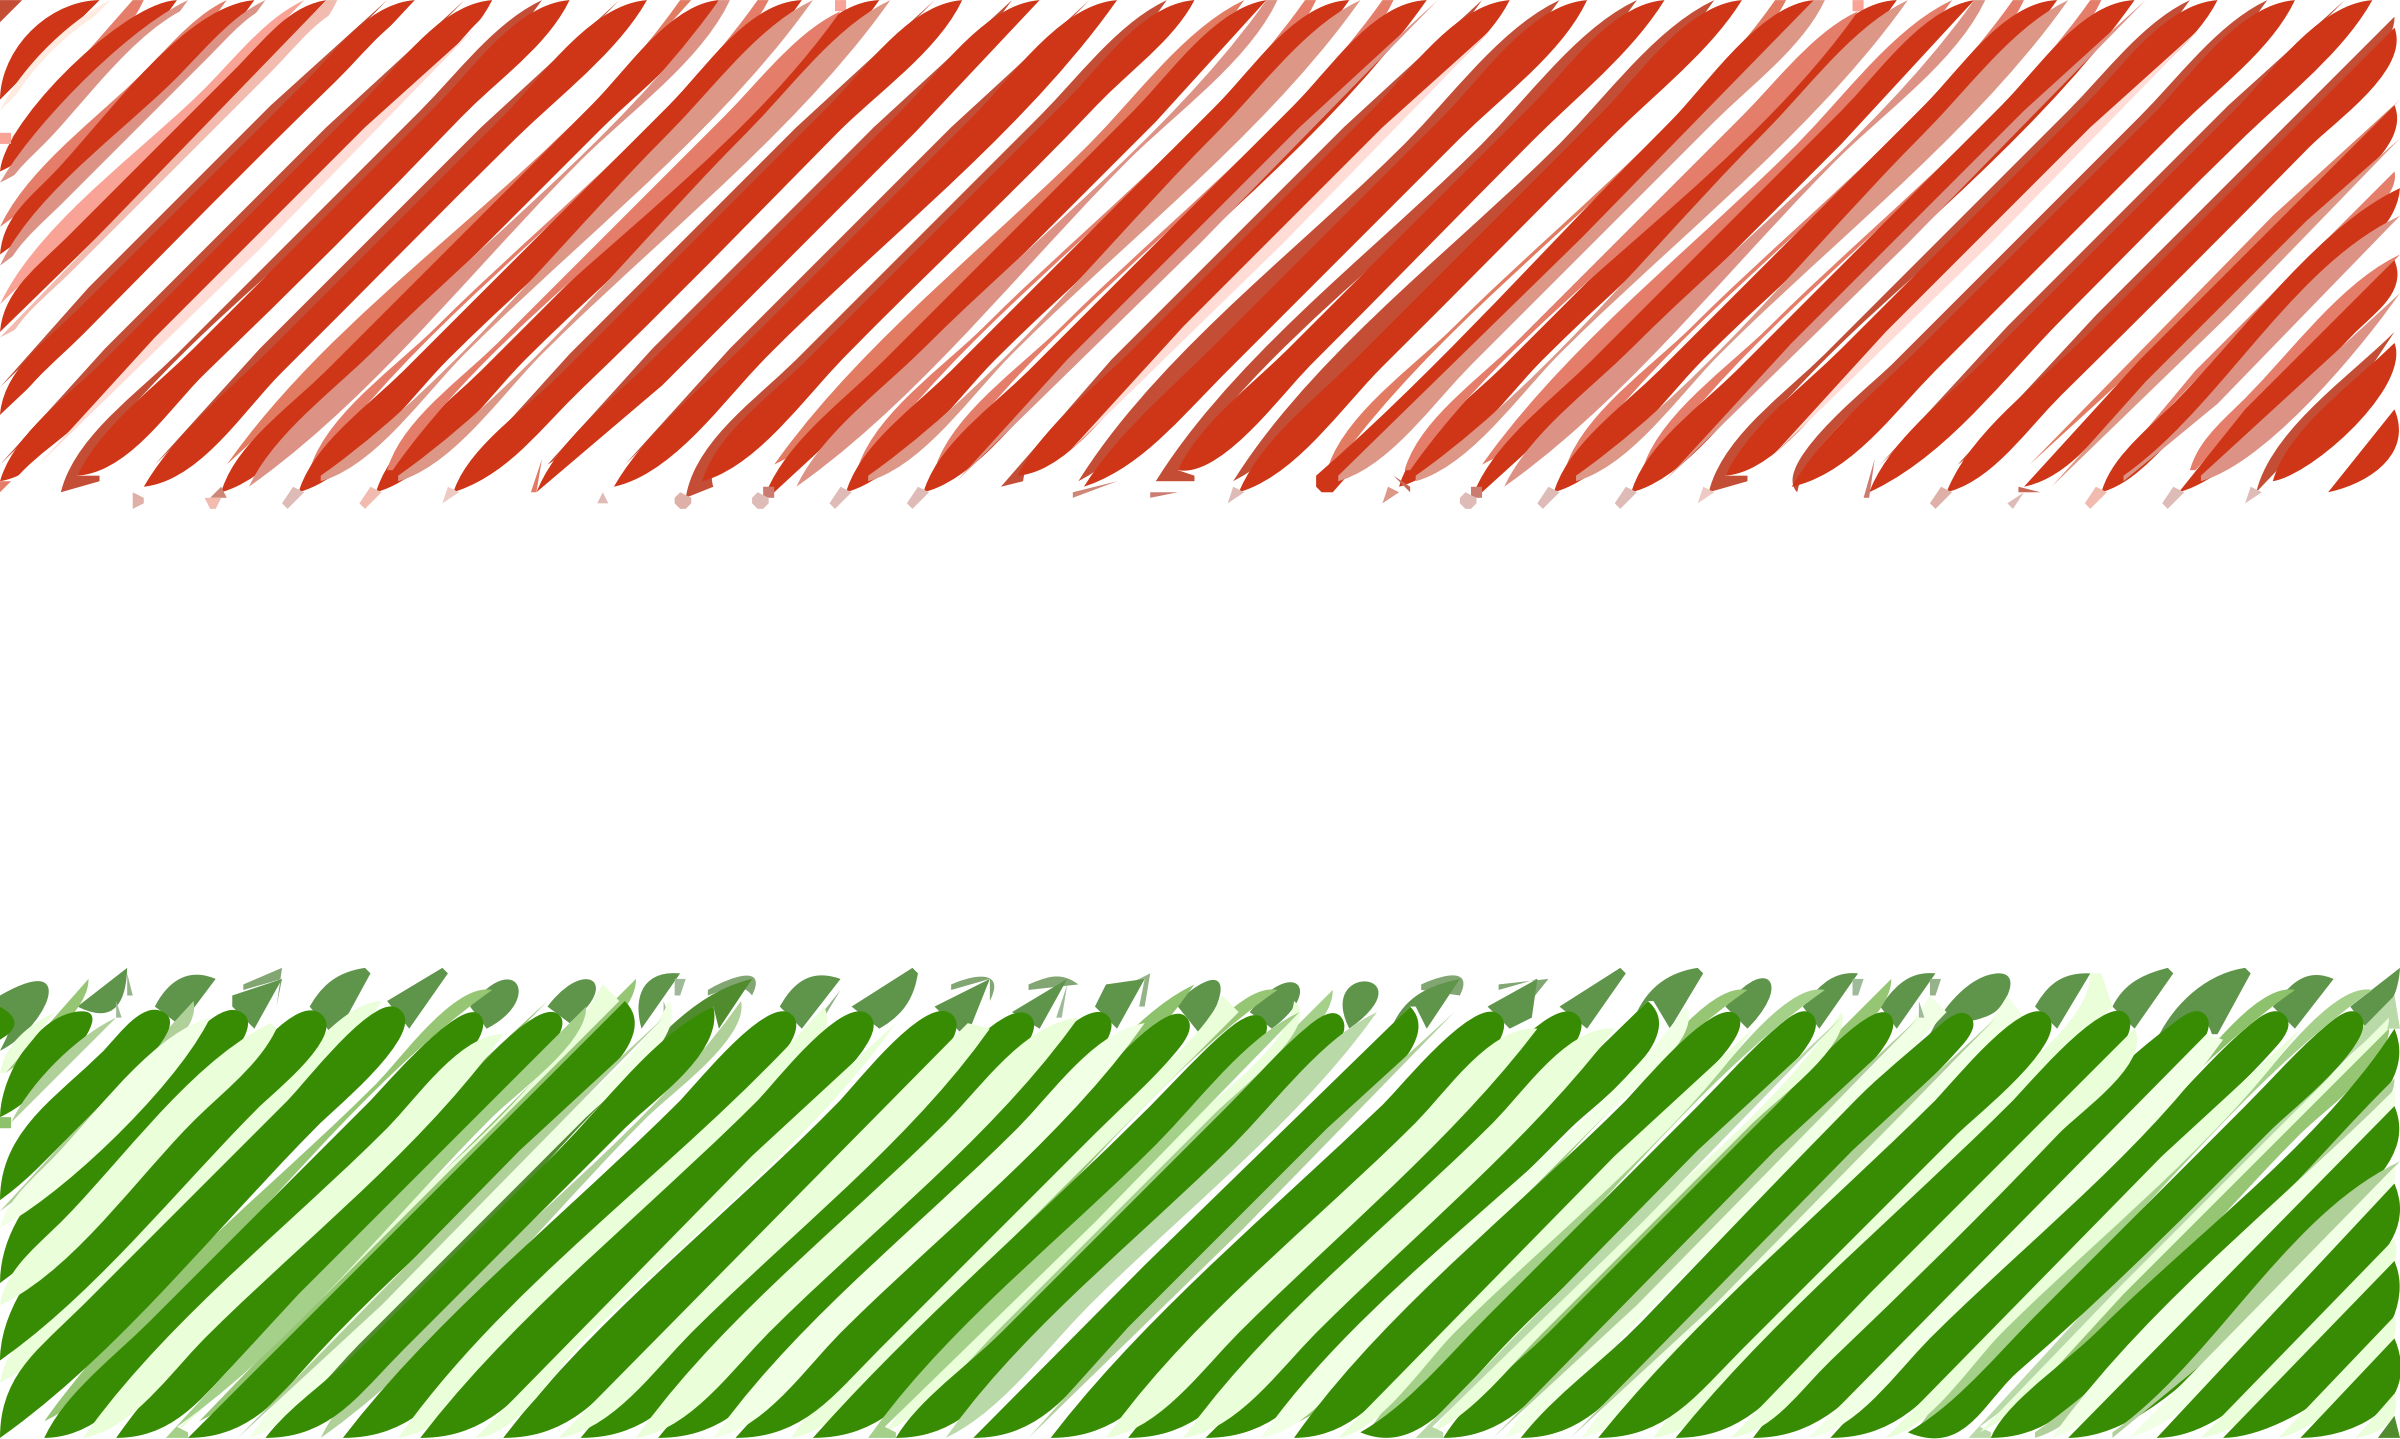 Hungary flag linear by Joesph